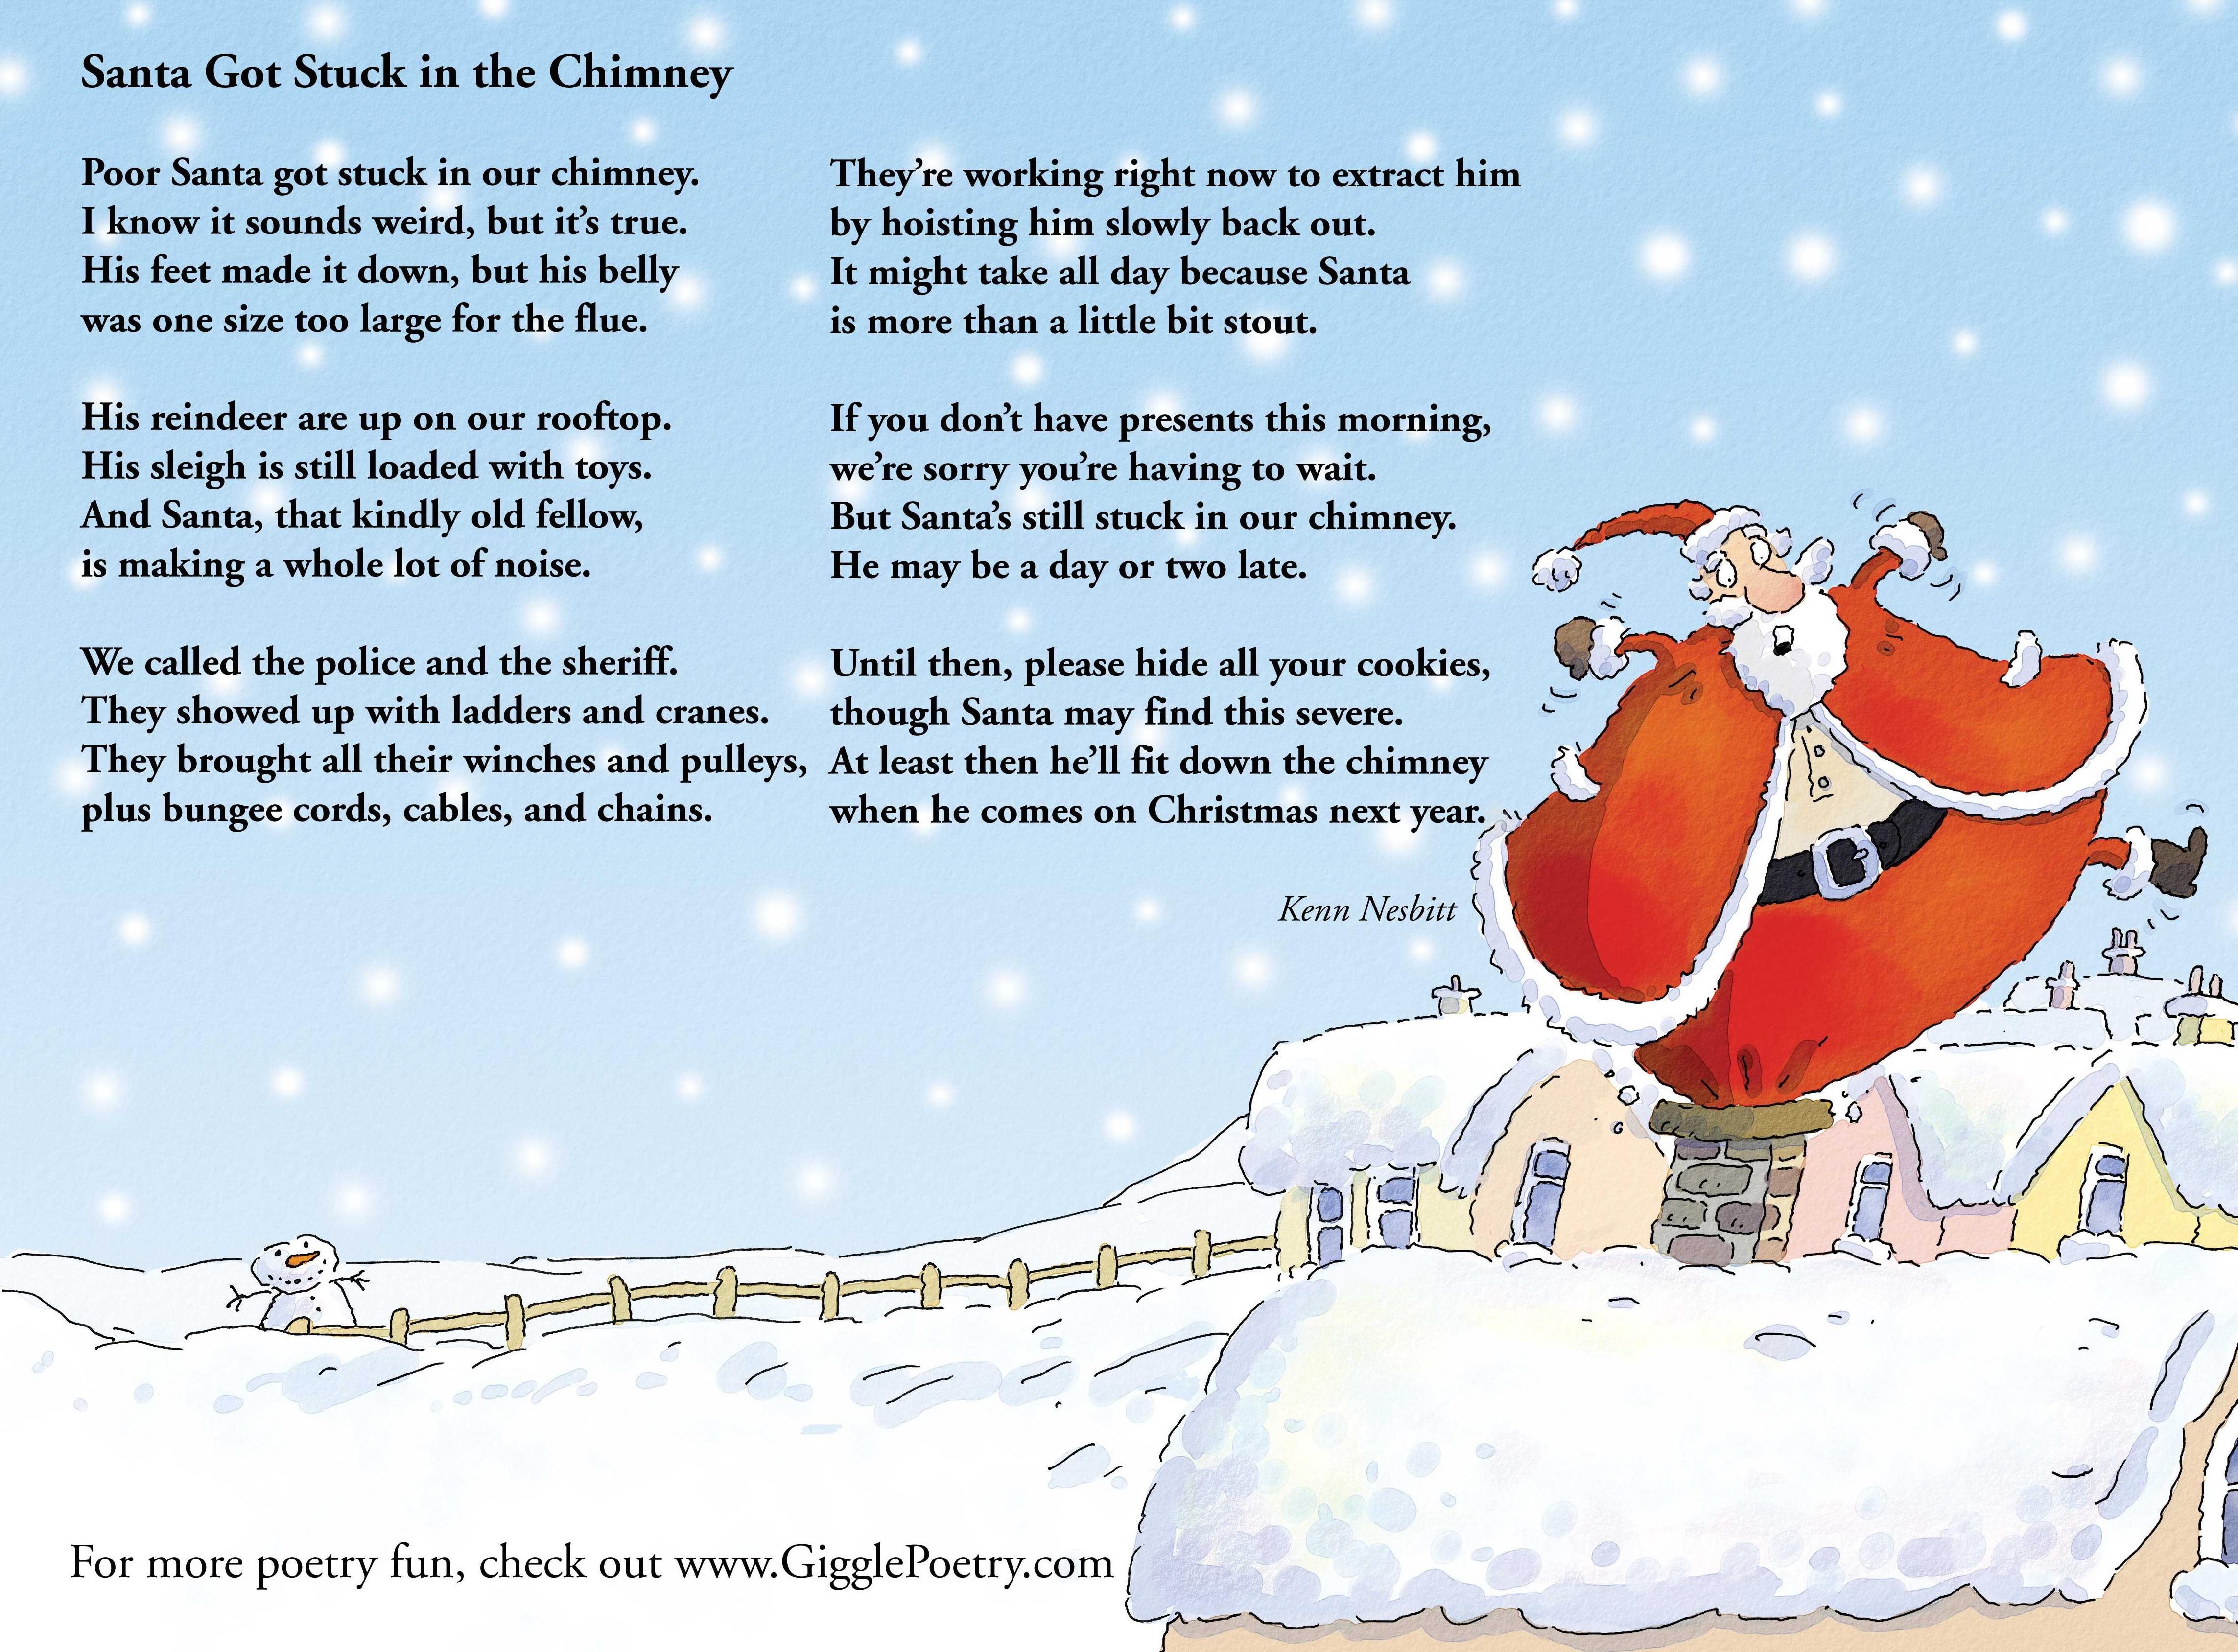 Santa got stuck in the chimney a hilarious holiday poem by kenn santa got stuck in the chimney a hilarious holiday poem by kenn nesbitt kristyandbryce Image collections